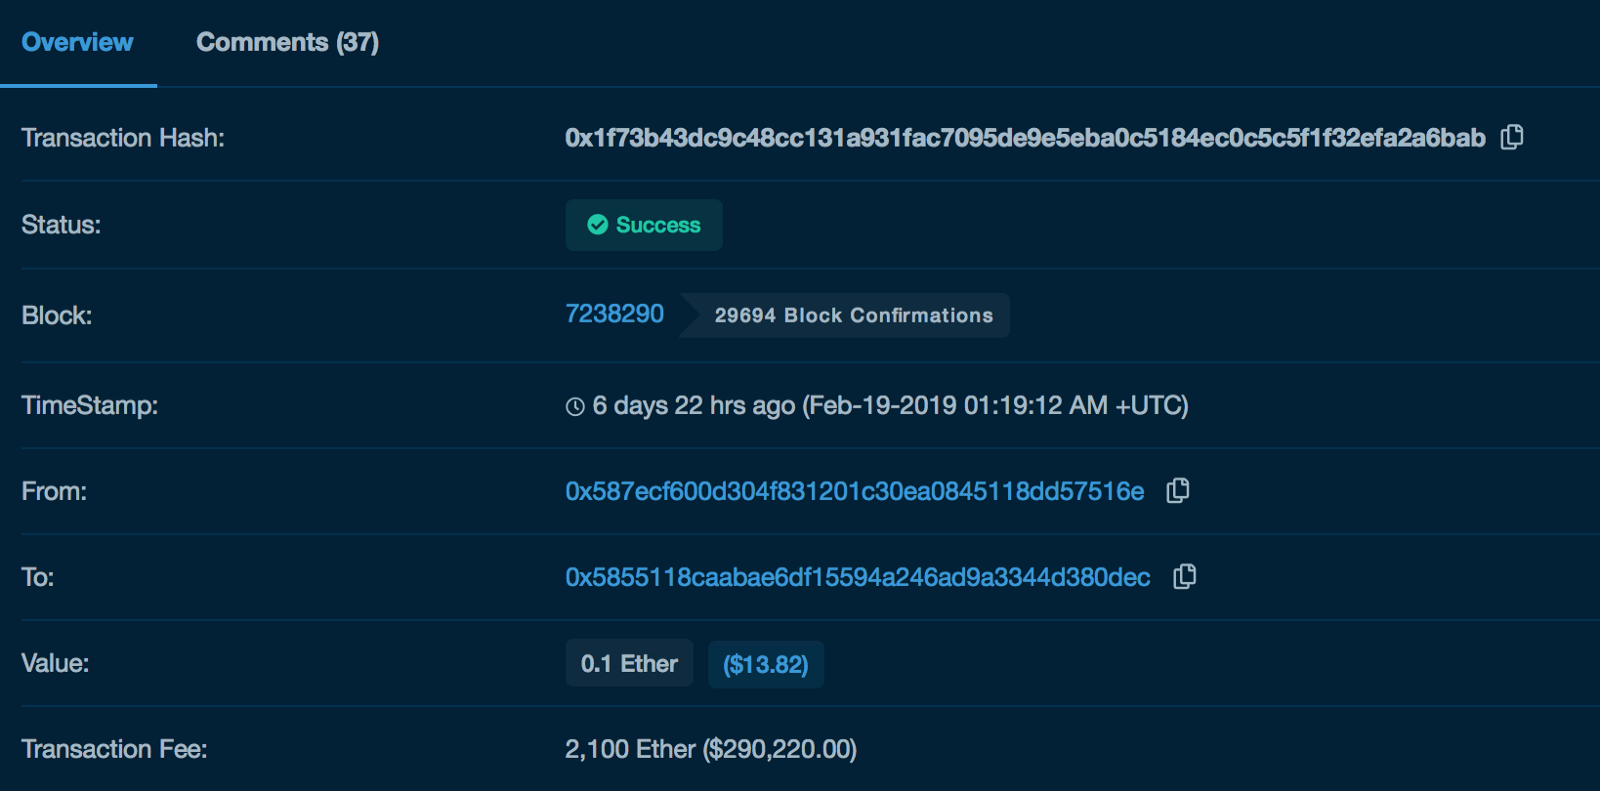 /fat-finger-or-token-laundering-explaining-that-300-000-fee-ethereum-transaction-bb20ba76ce40 feature image